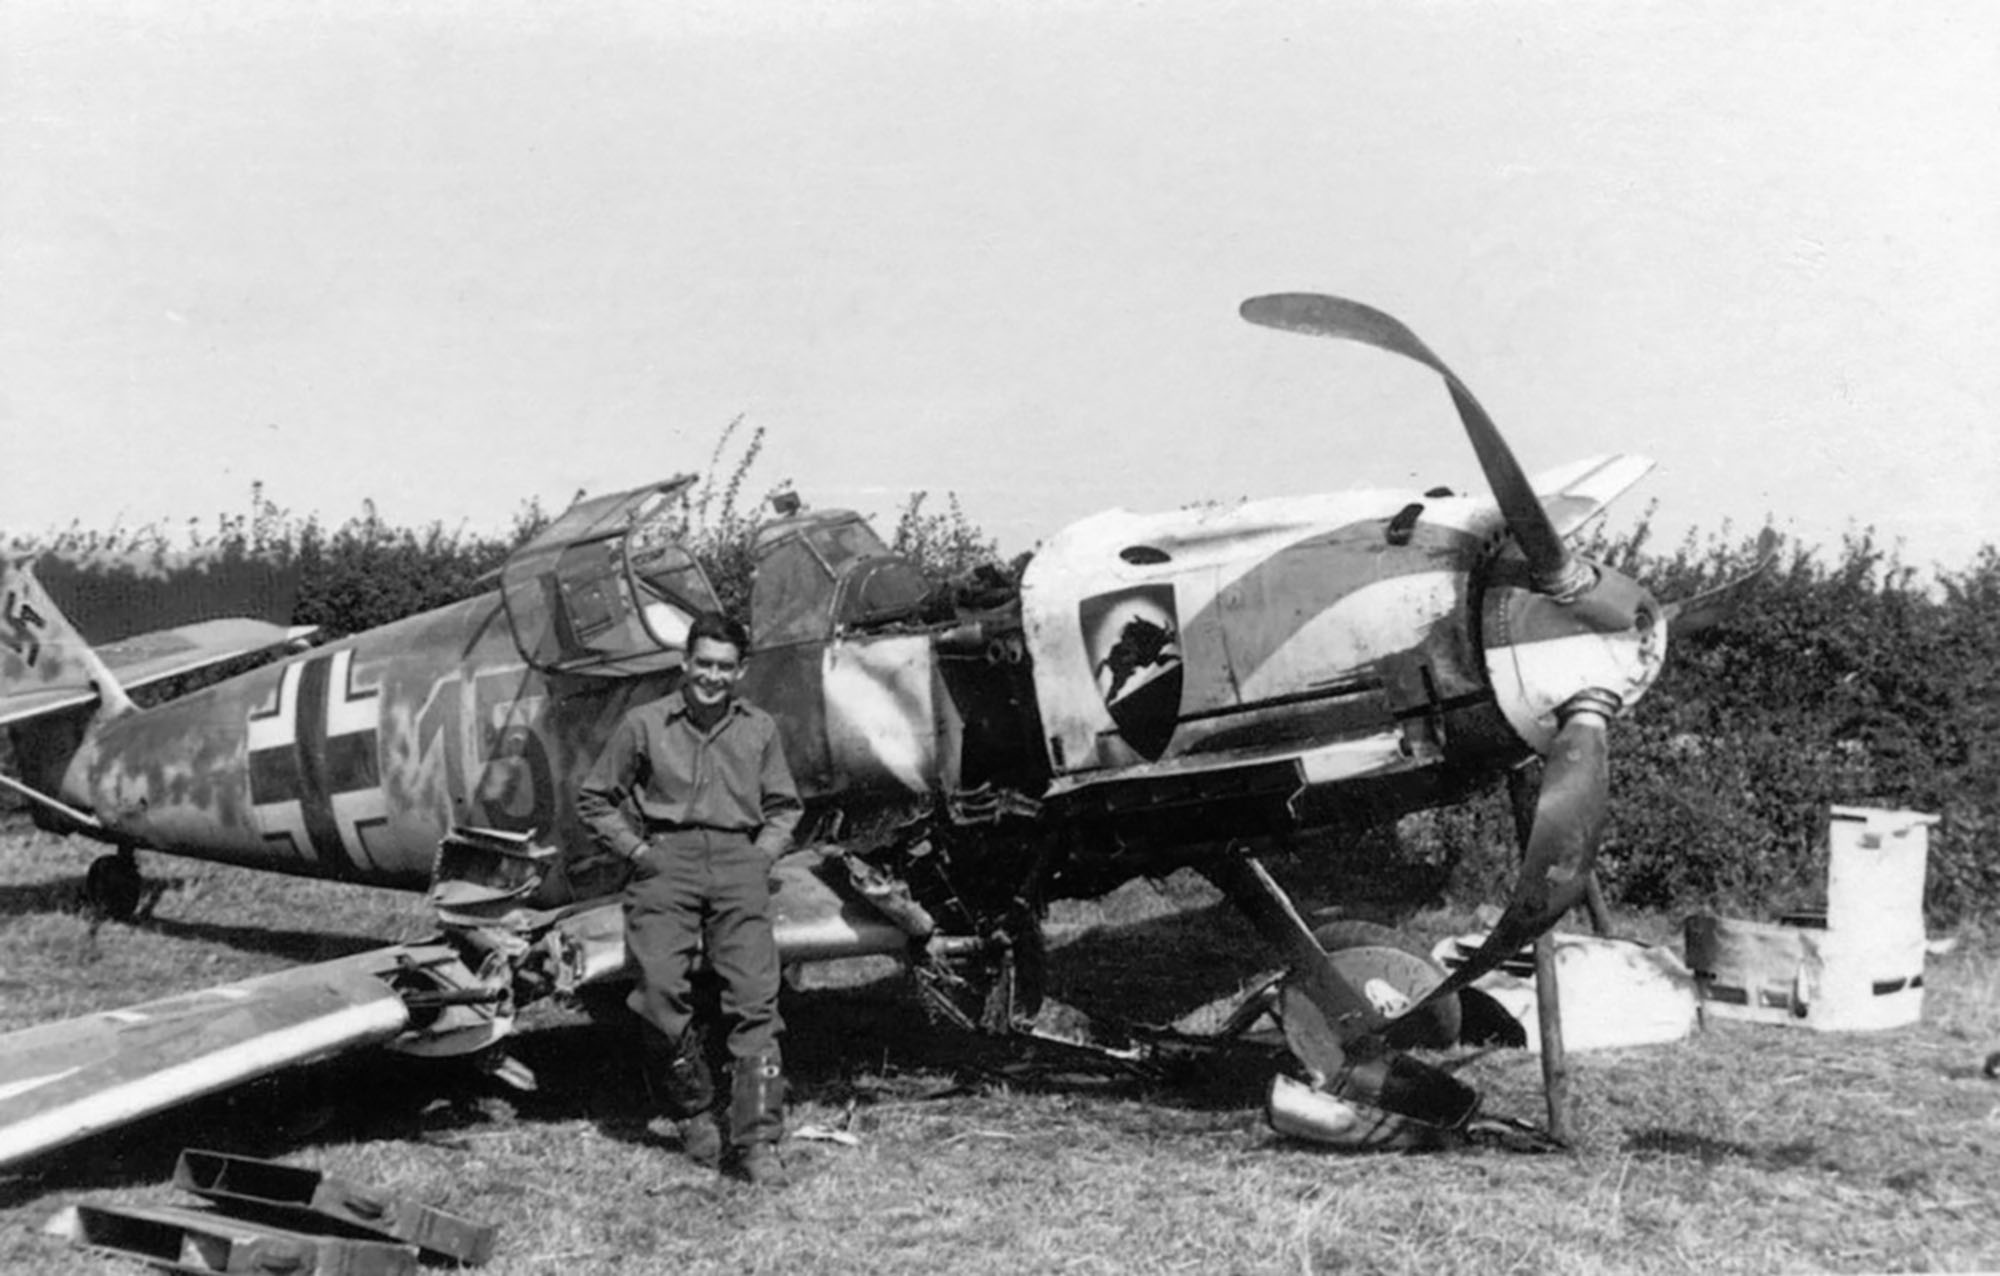 Messerschmitt Bf 109E3 3.JG52 Yellow 15 Kurt Wolff crash landed France 30th Aug 1940 03